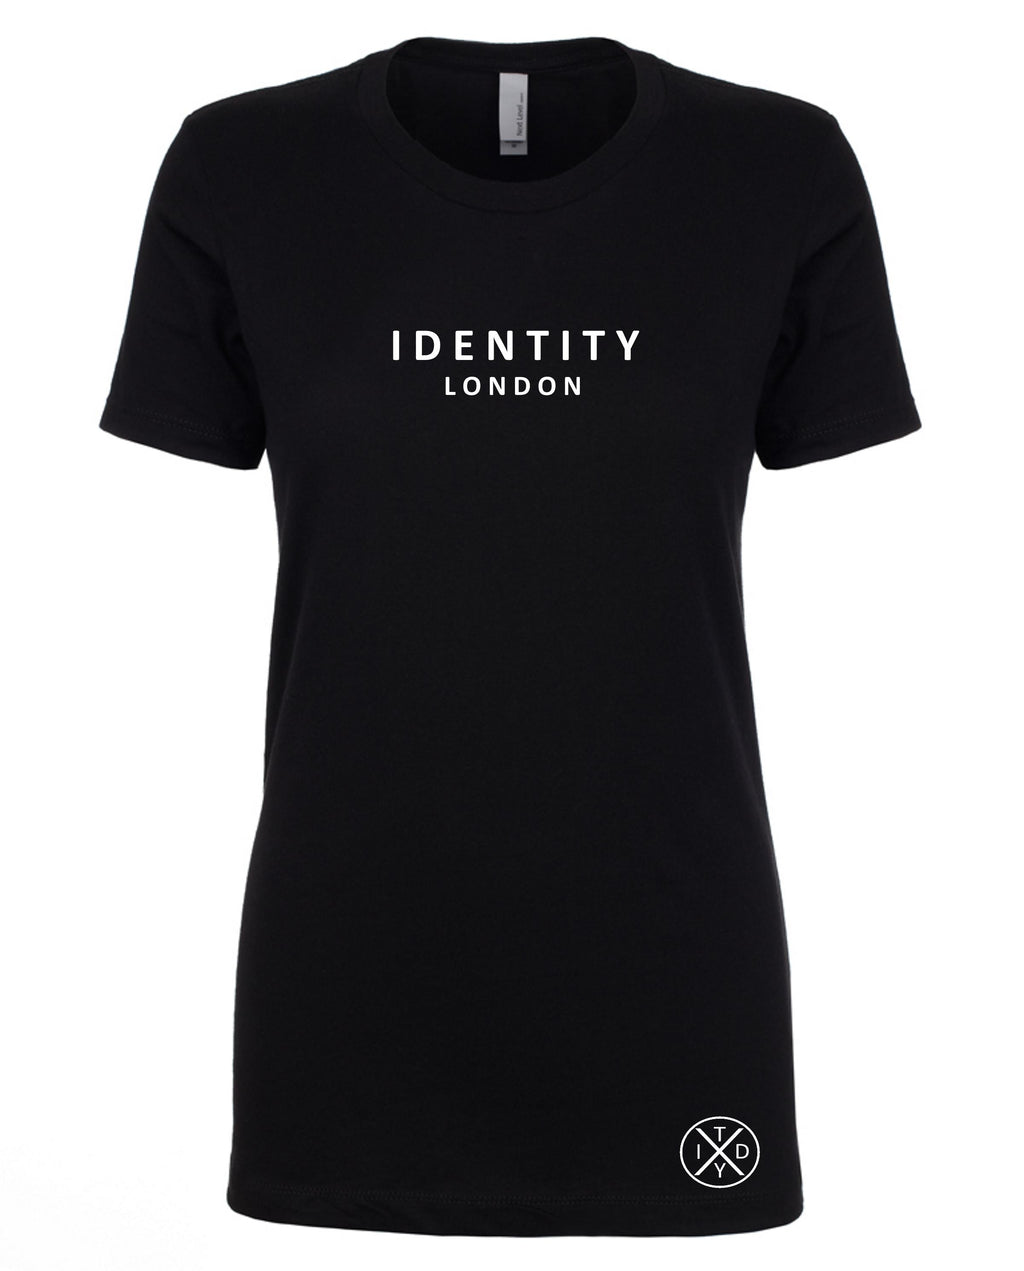 Womens Statement London T-Shirt (Black)